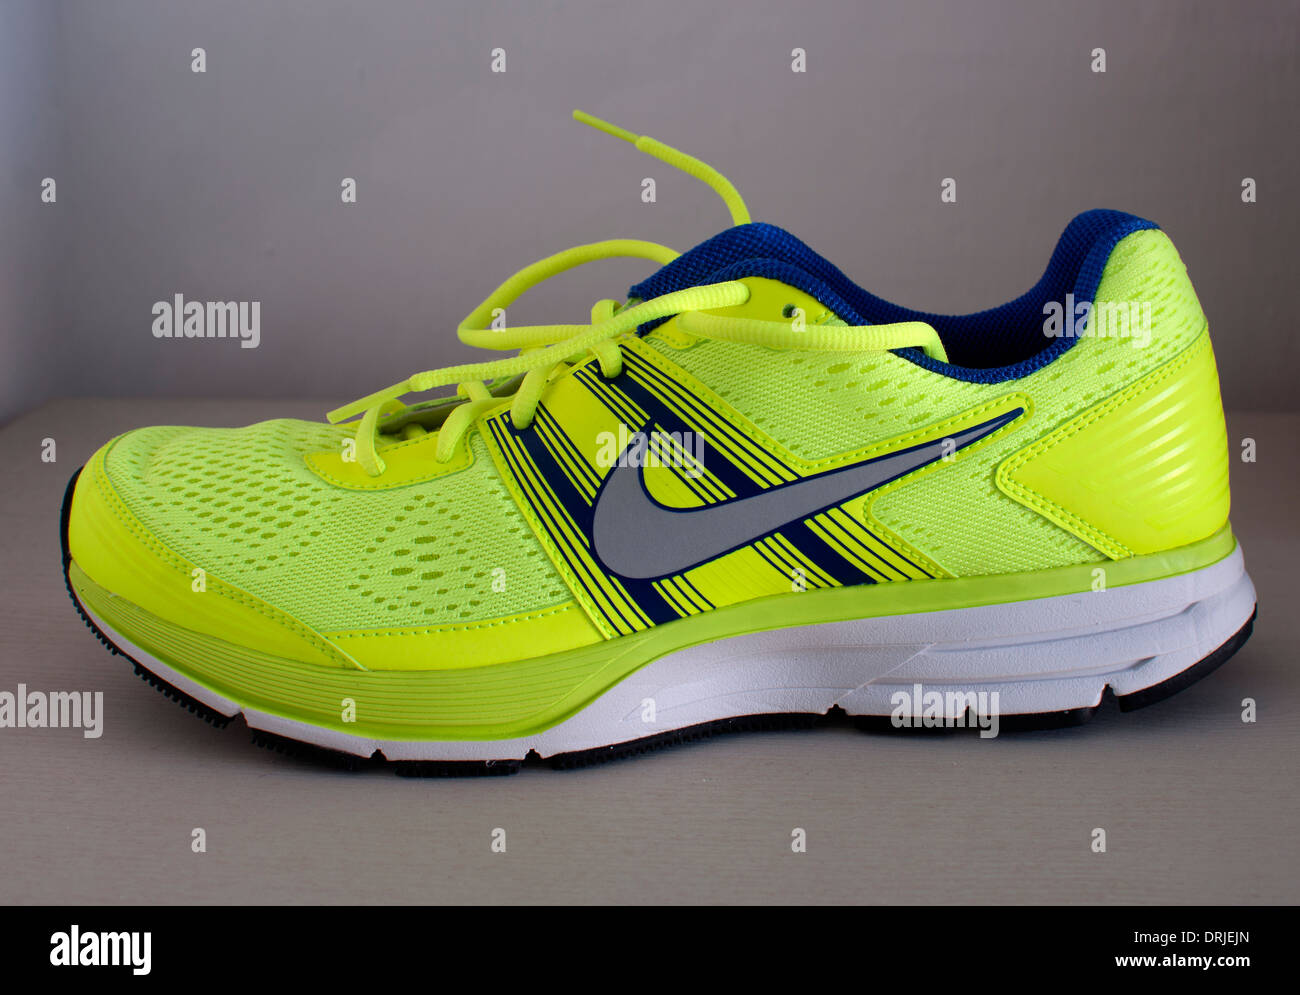 the best attitude e52e3 9575d Chaussure de course Nike Air Pegasus Photo Stock